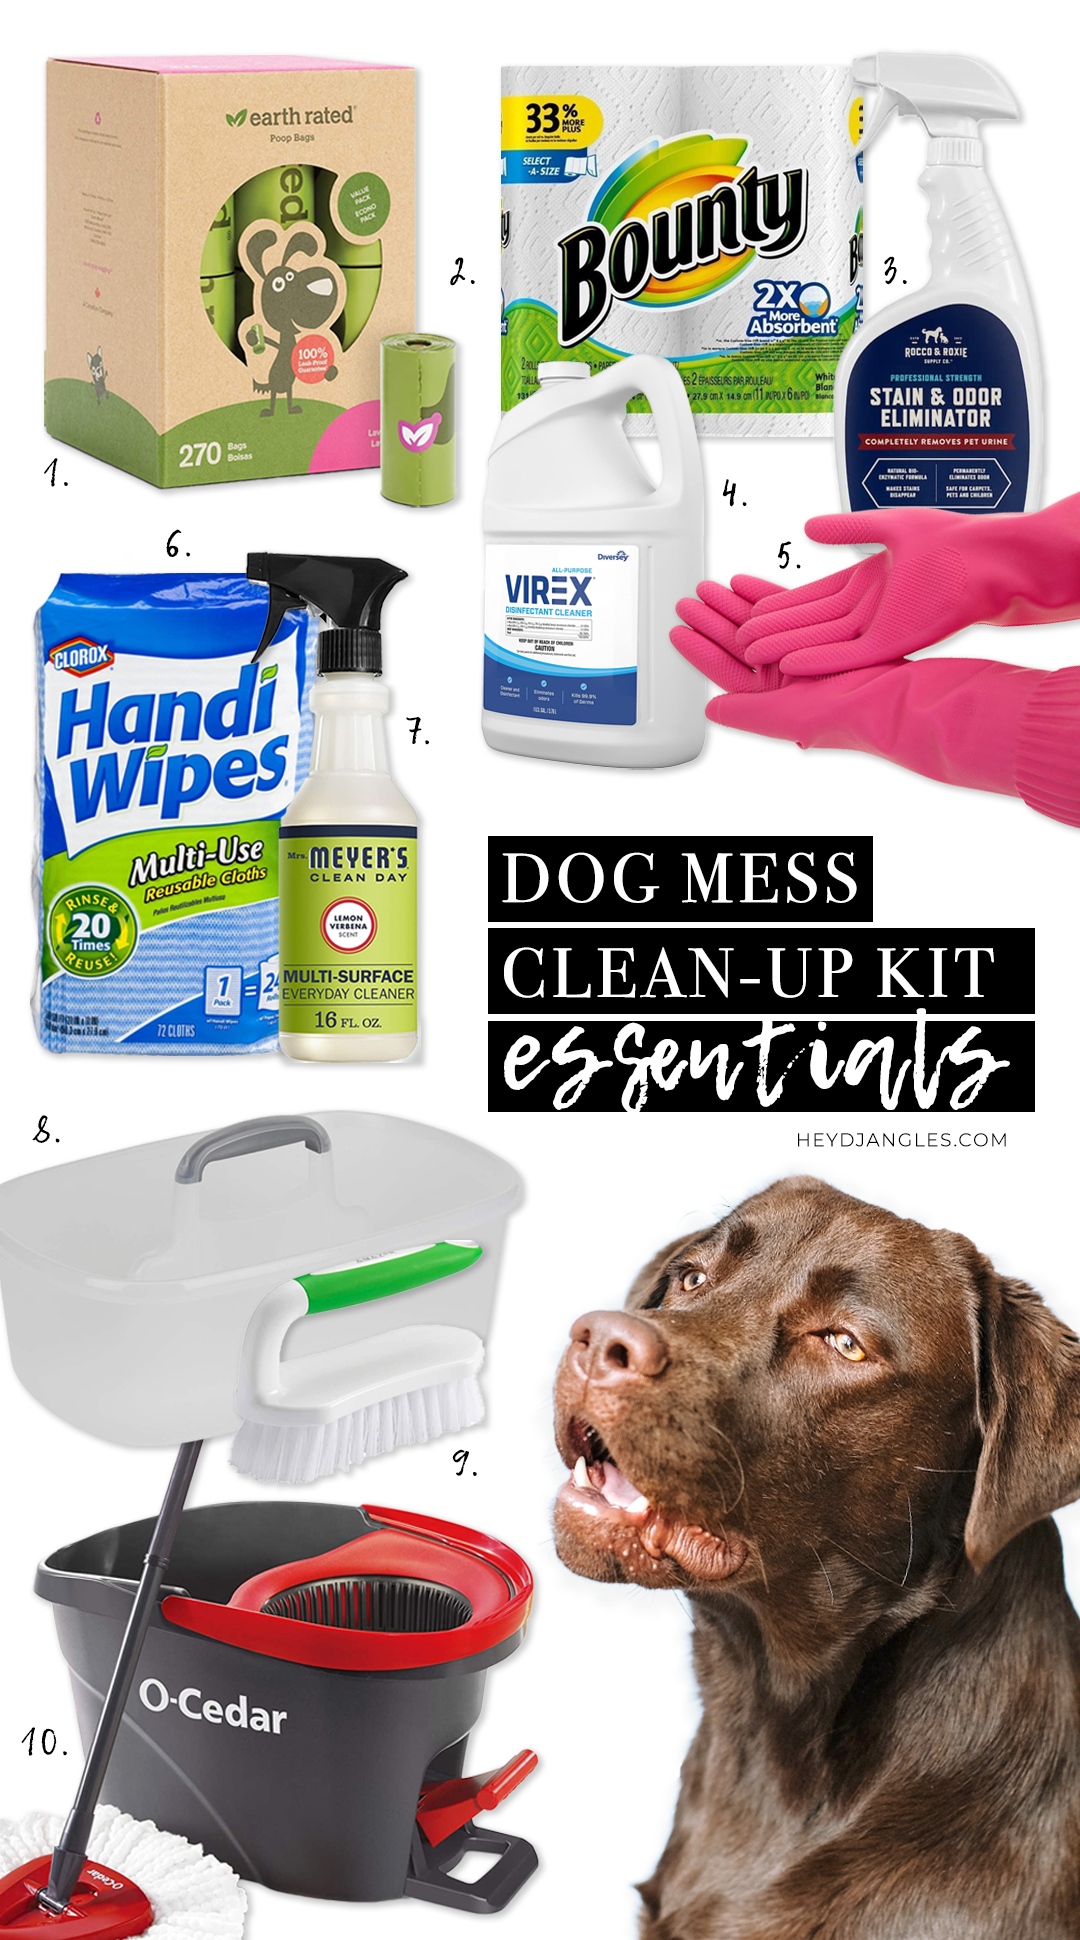 7 Simple Tips for Keeping a Clean Home with Dogs - Dog mess clean-up kit essentials